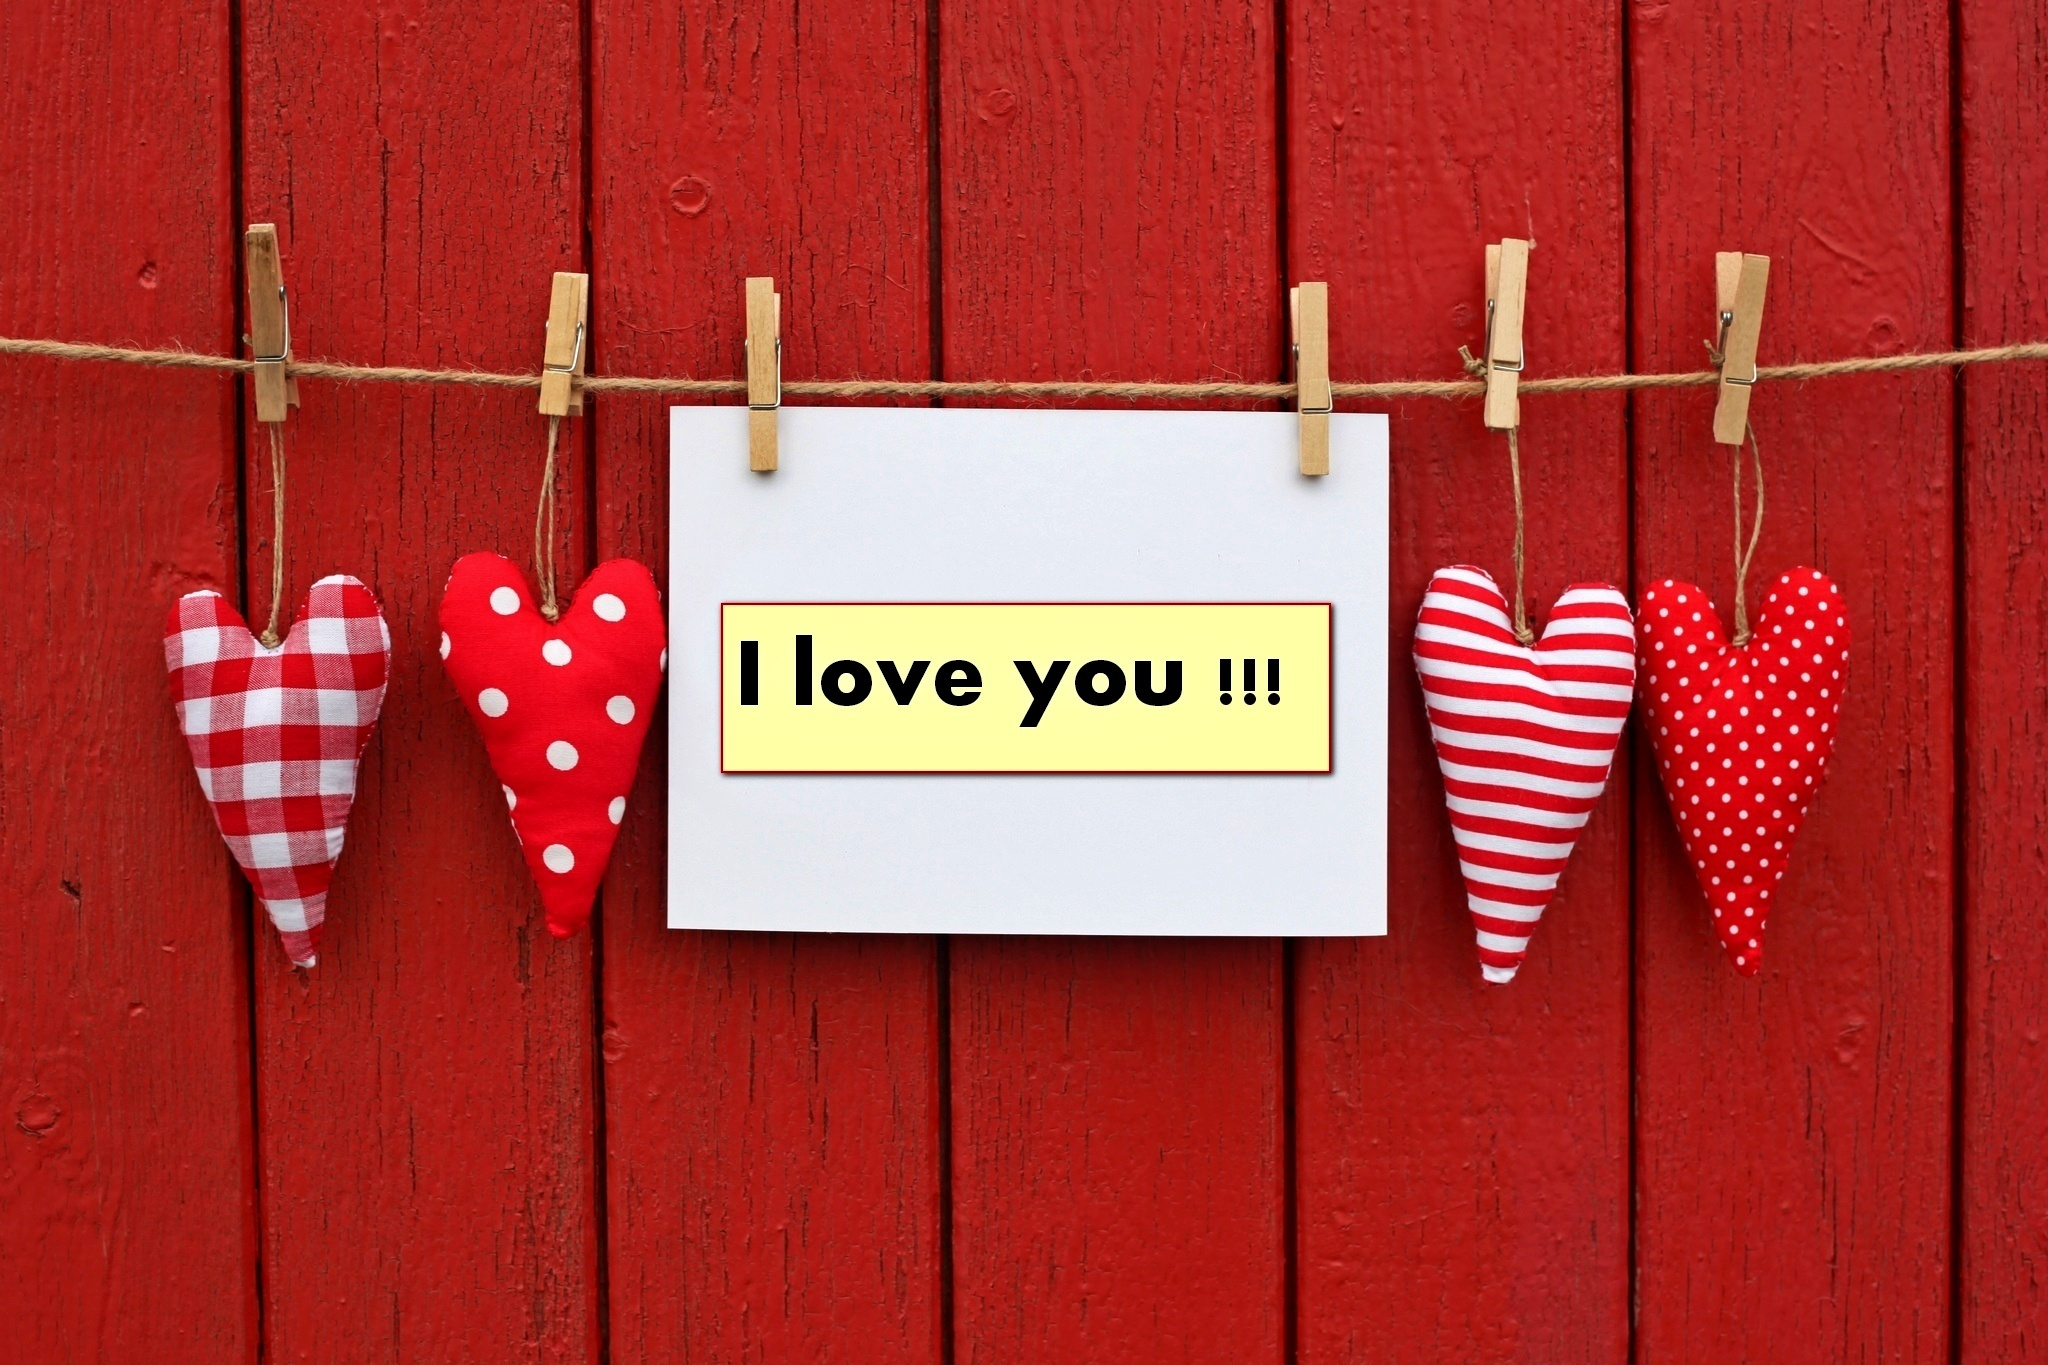 I Love You Wallpaper For Pc : I Love You Wallpapers HD A9 - HD Desktop Wallpapers 4k HD